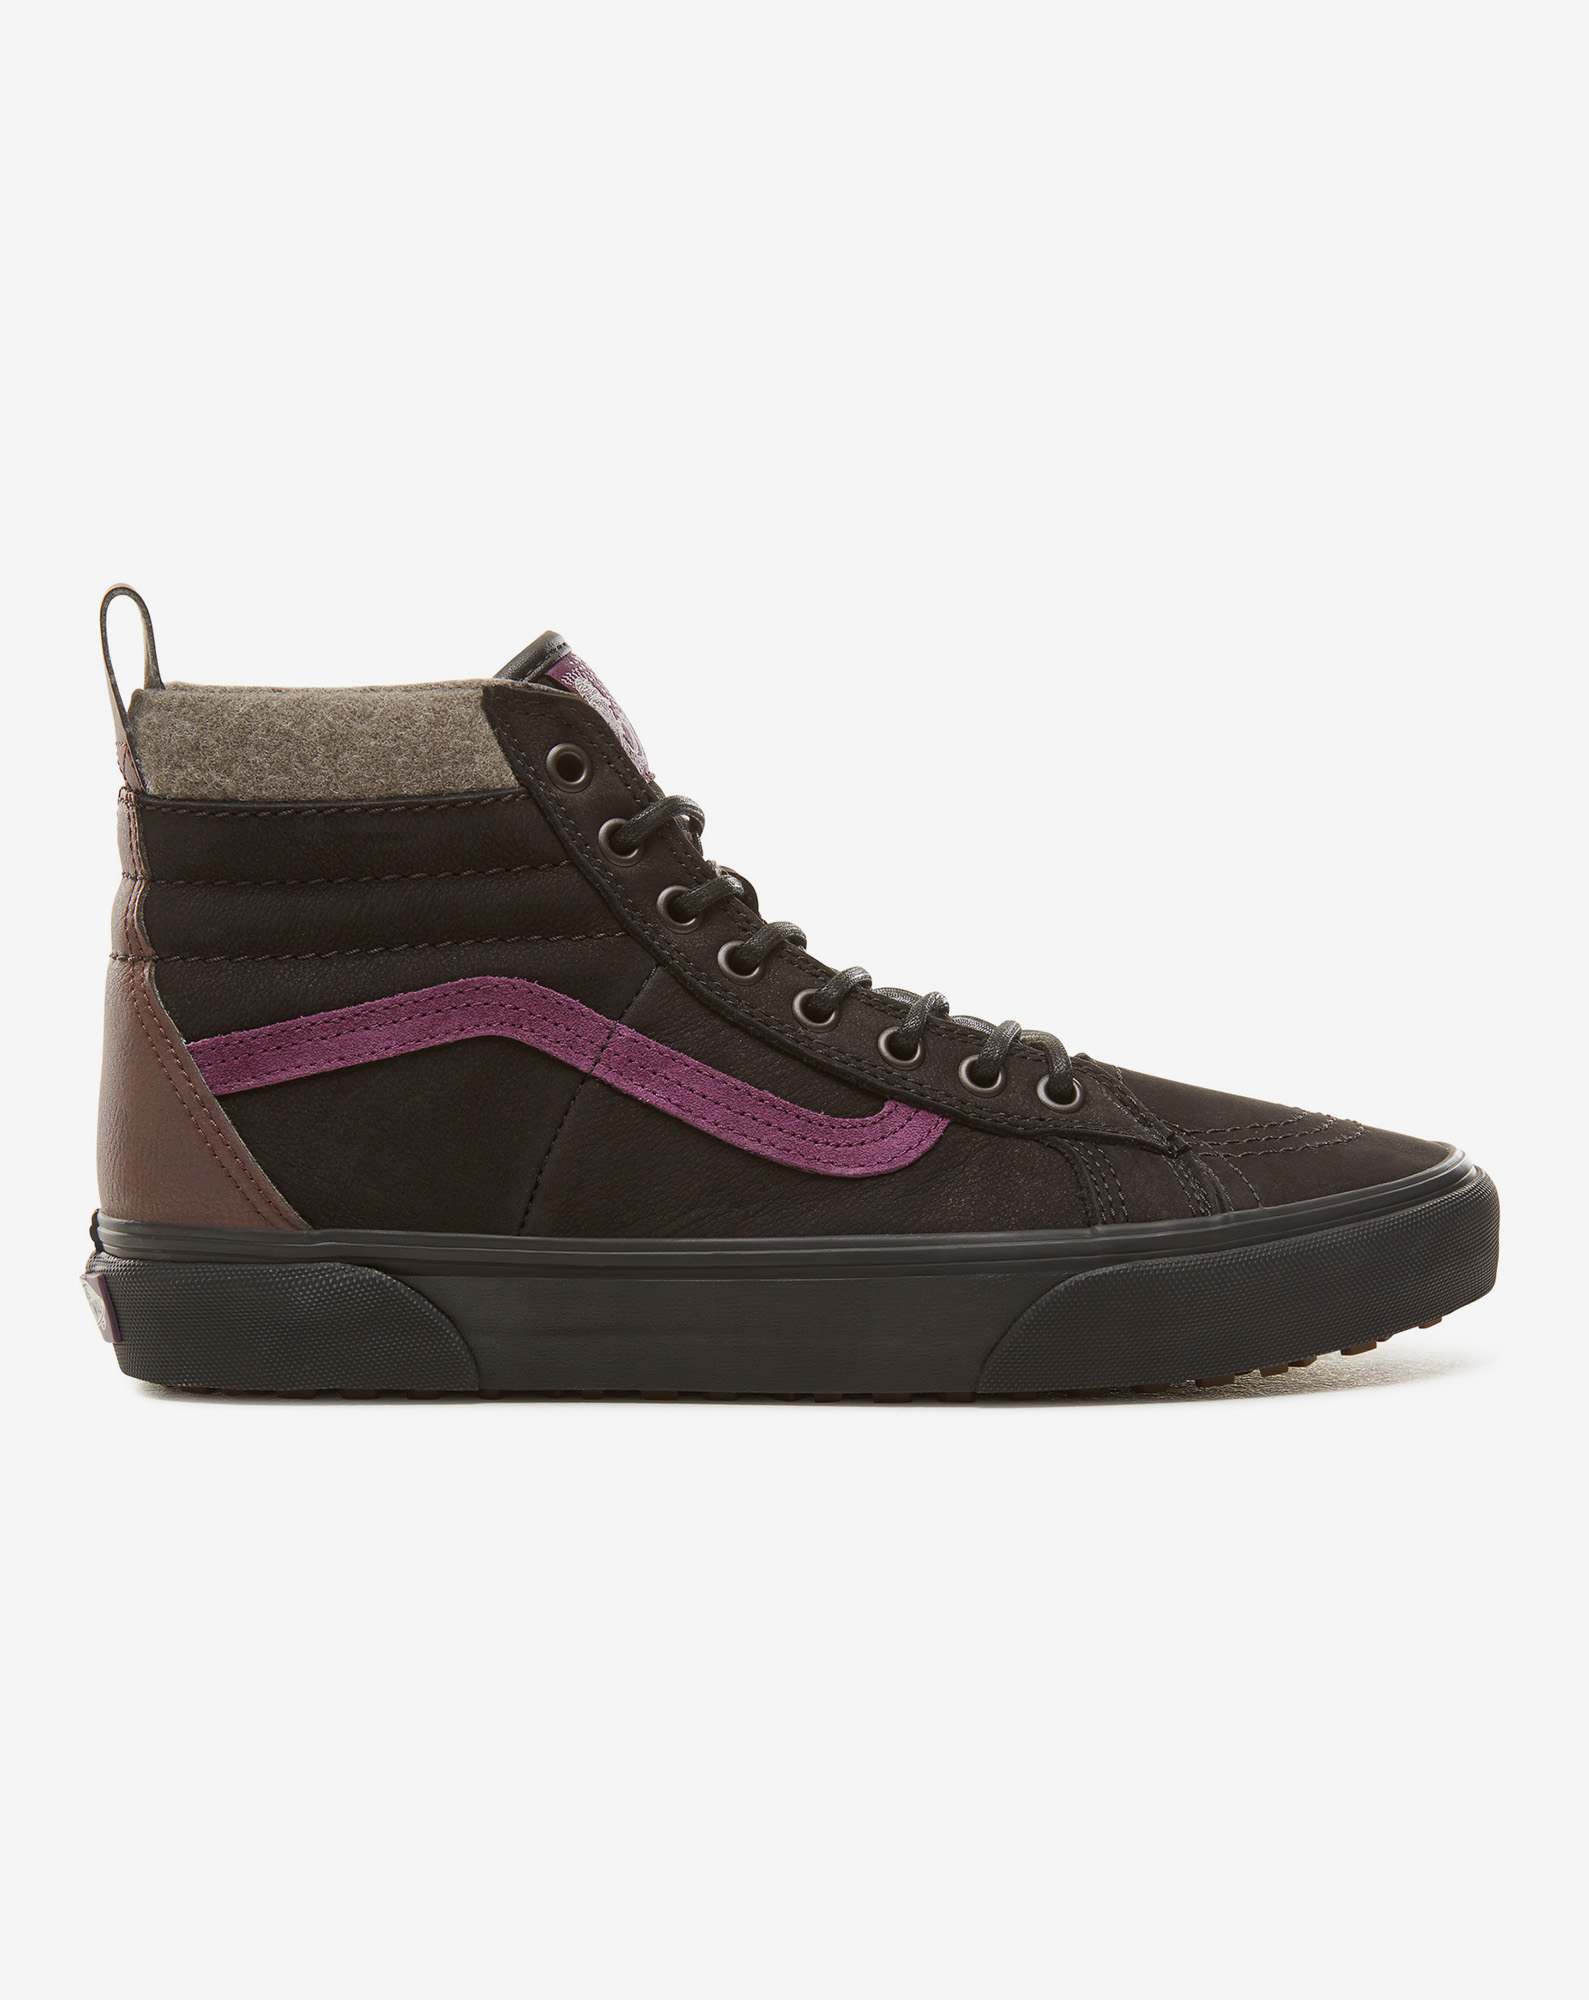 detail UA SK8-HI 46 MTE DX BLACK/PURPLE